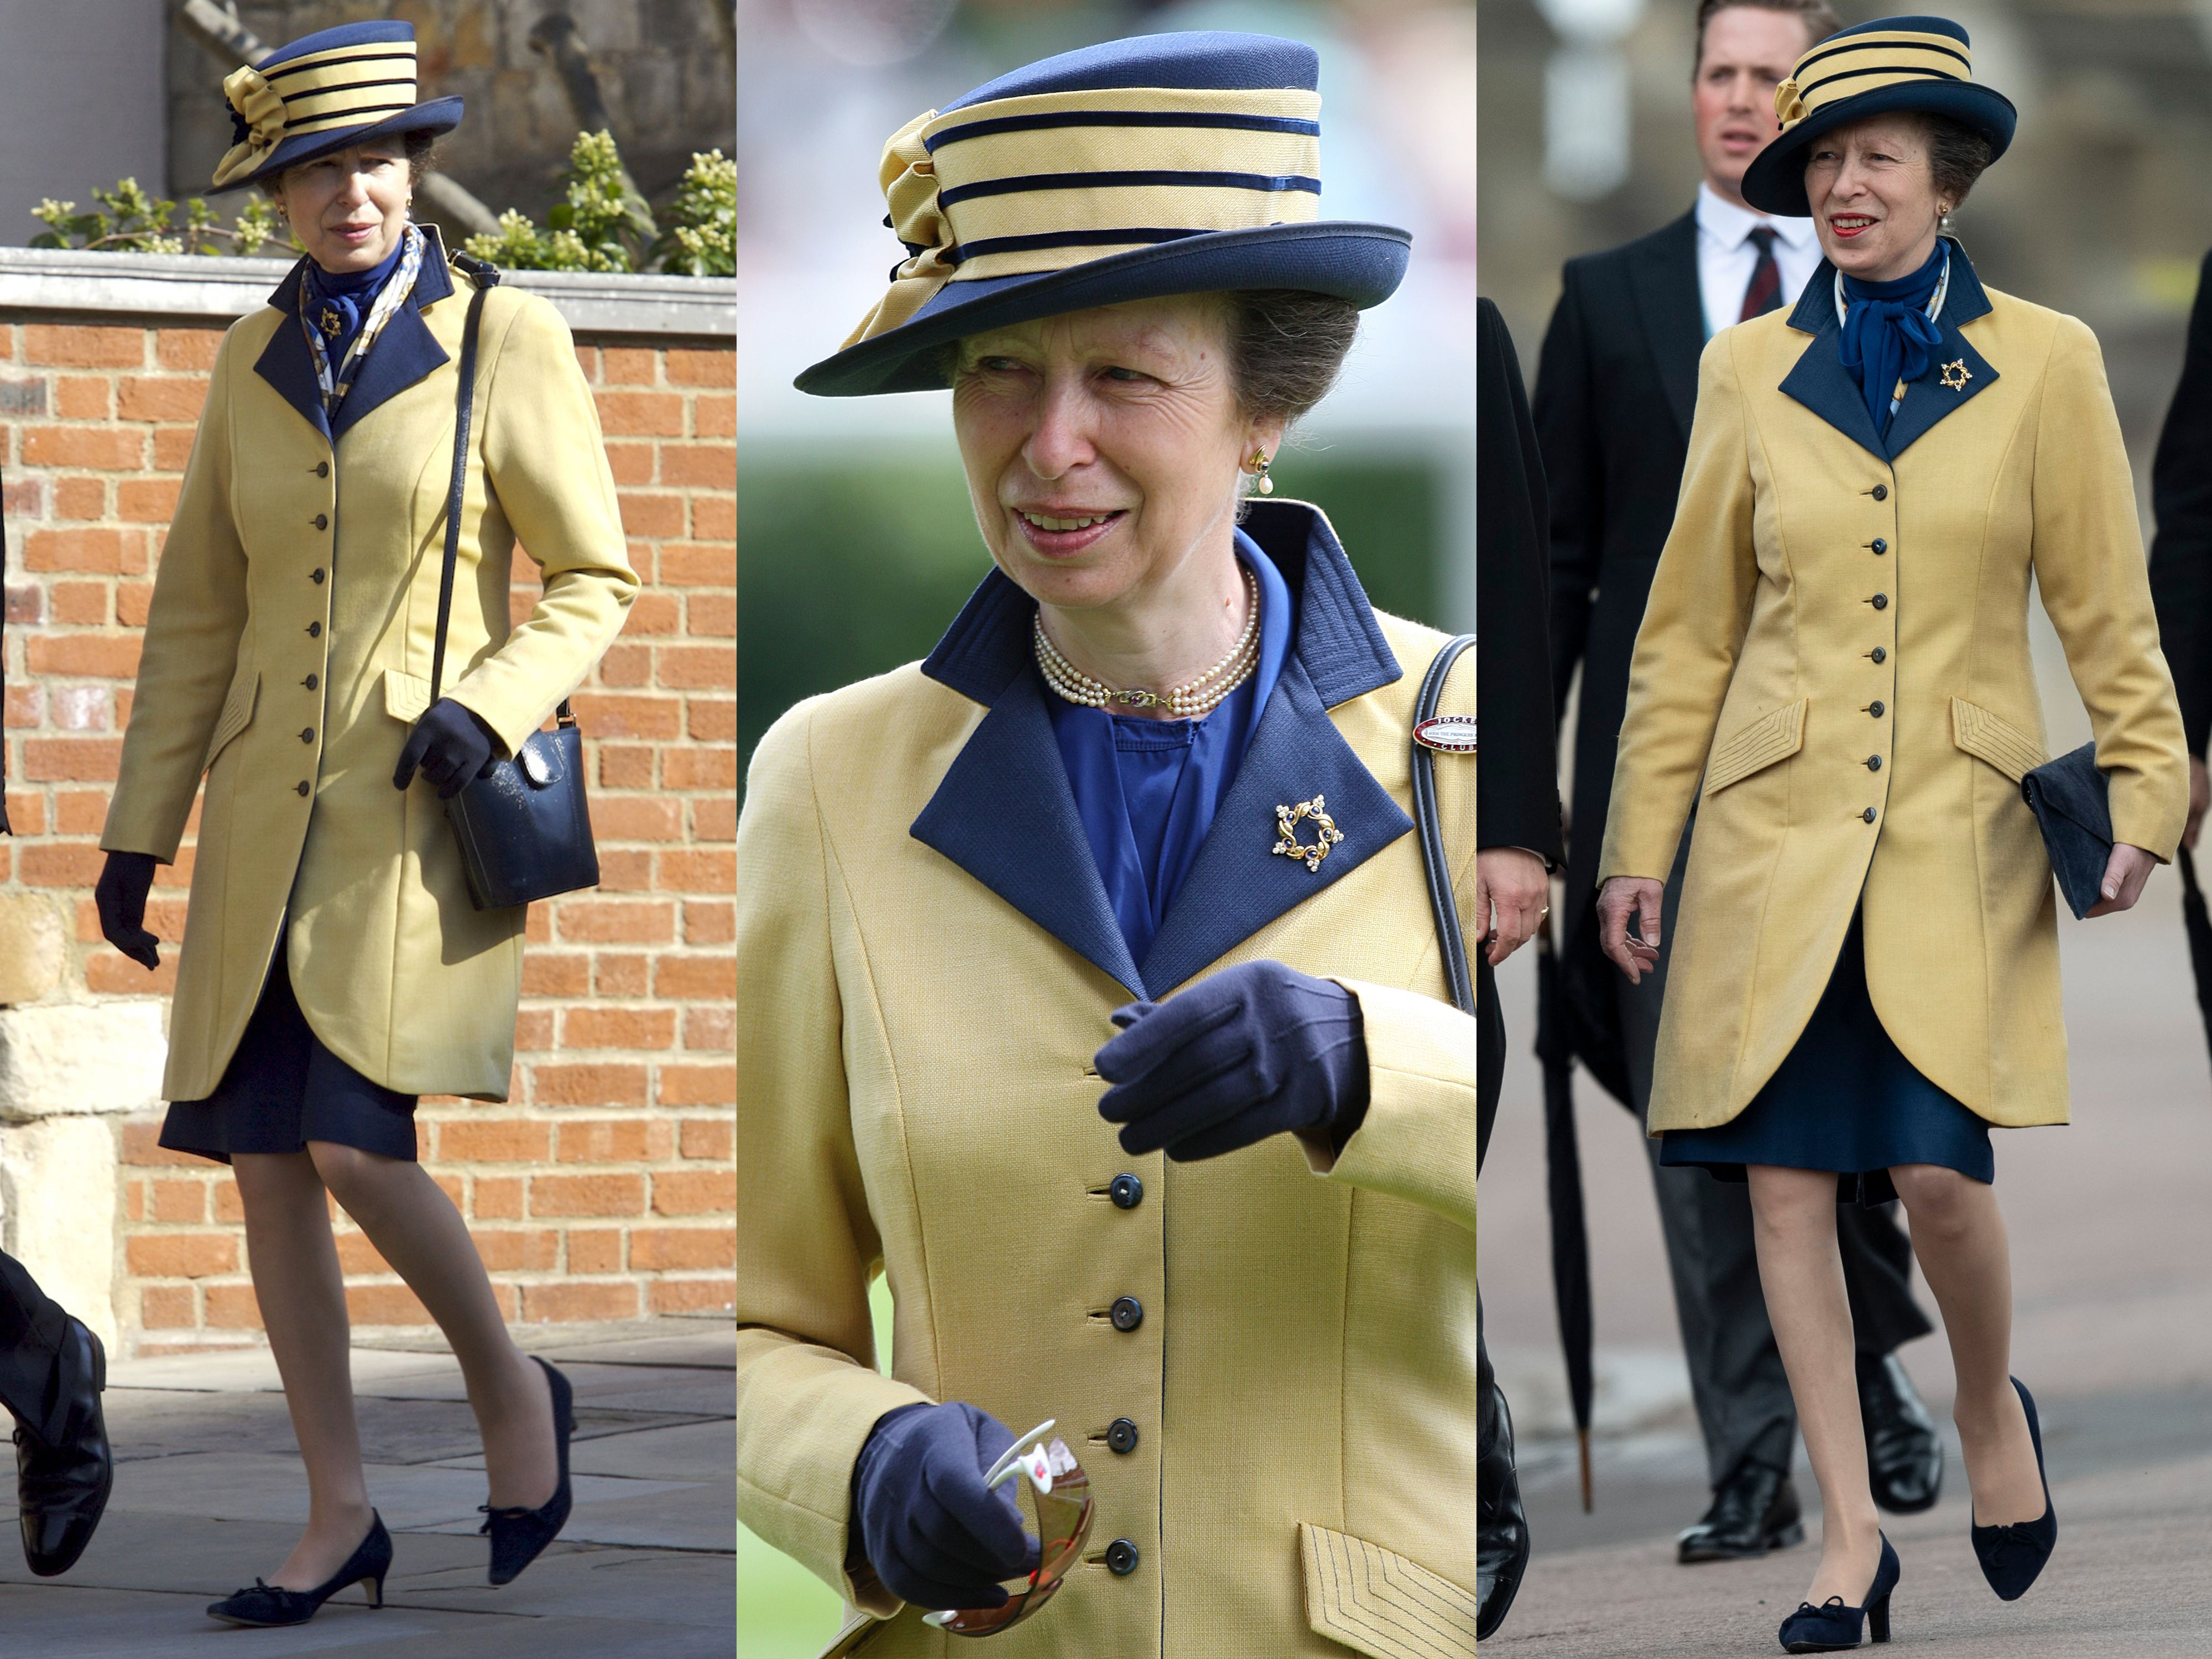 From left: Anne at Easter services at Windsor Castle in 2007, at Royal Ascot in 2009, and the graduation of 23 Junior Soldiers at the Army Foundation College in 2010.